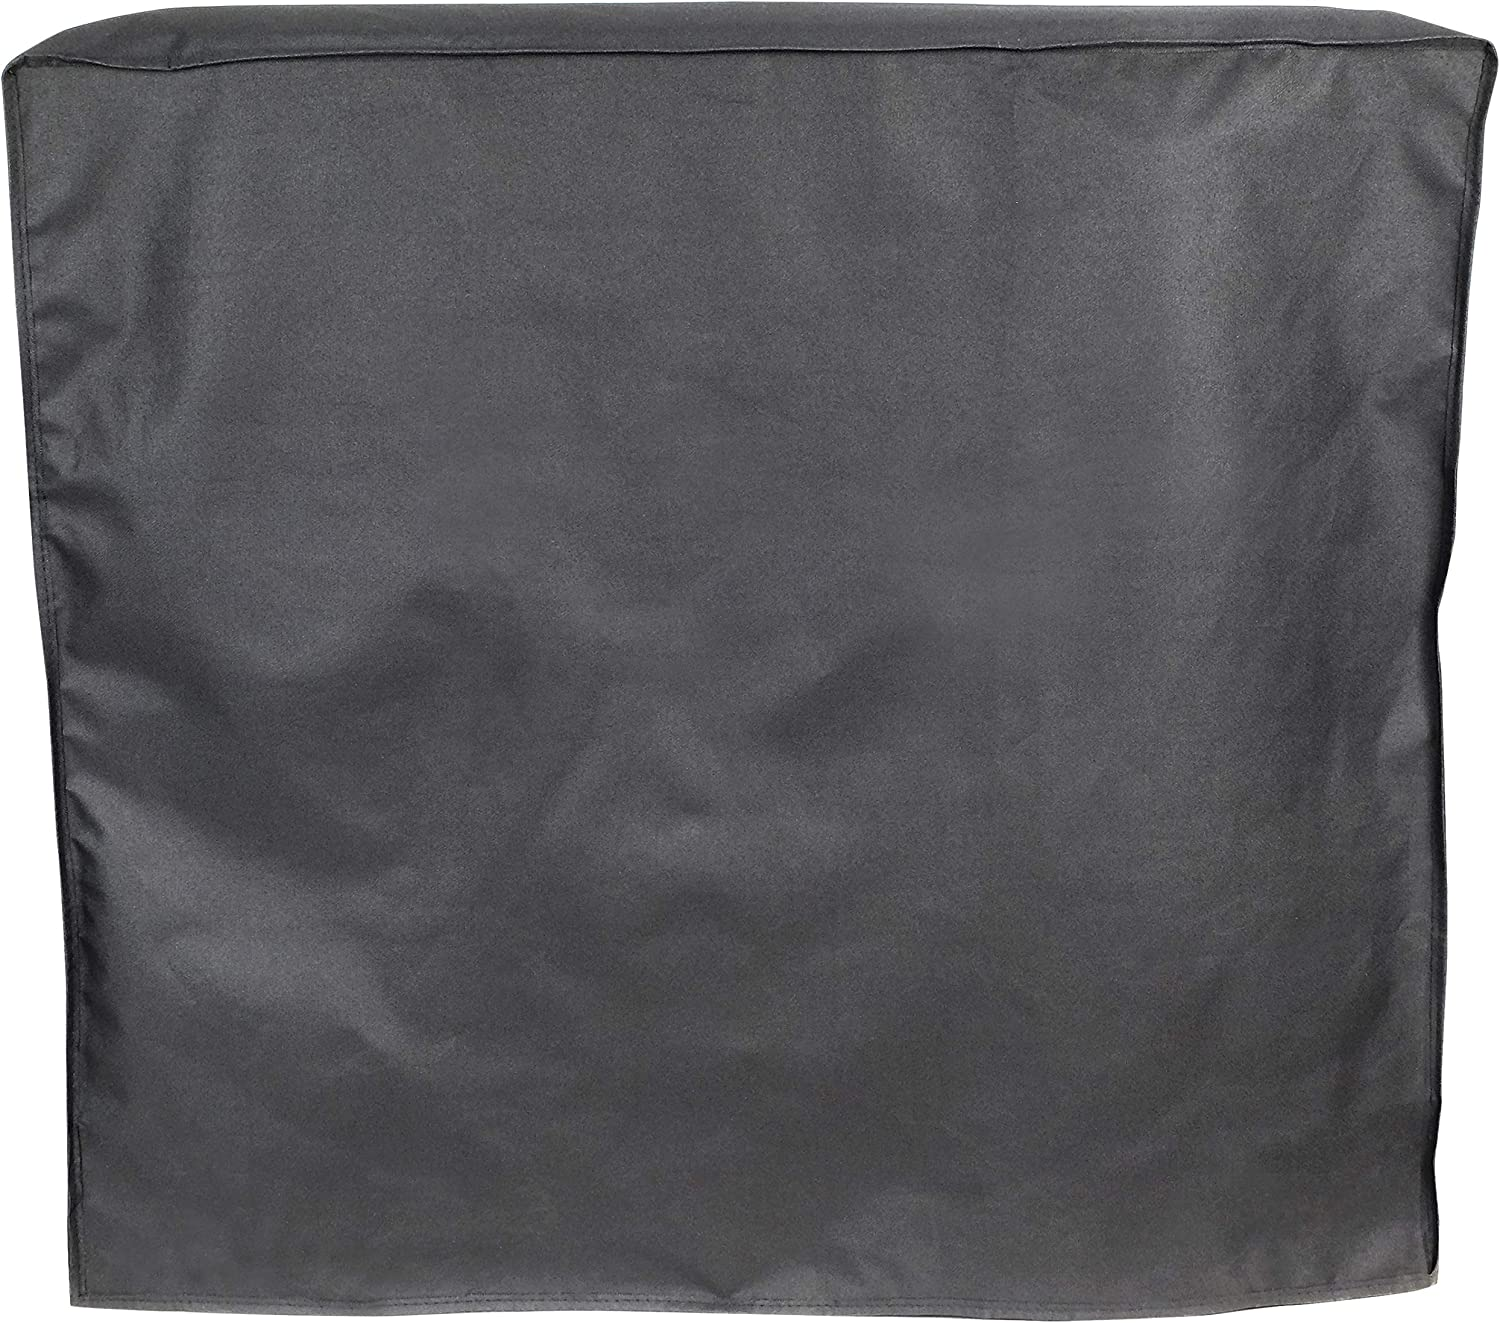 Permasteel PA-30385 Universal Patio Cooler Cover, Black